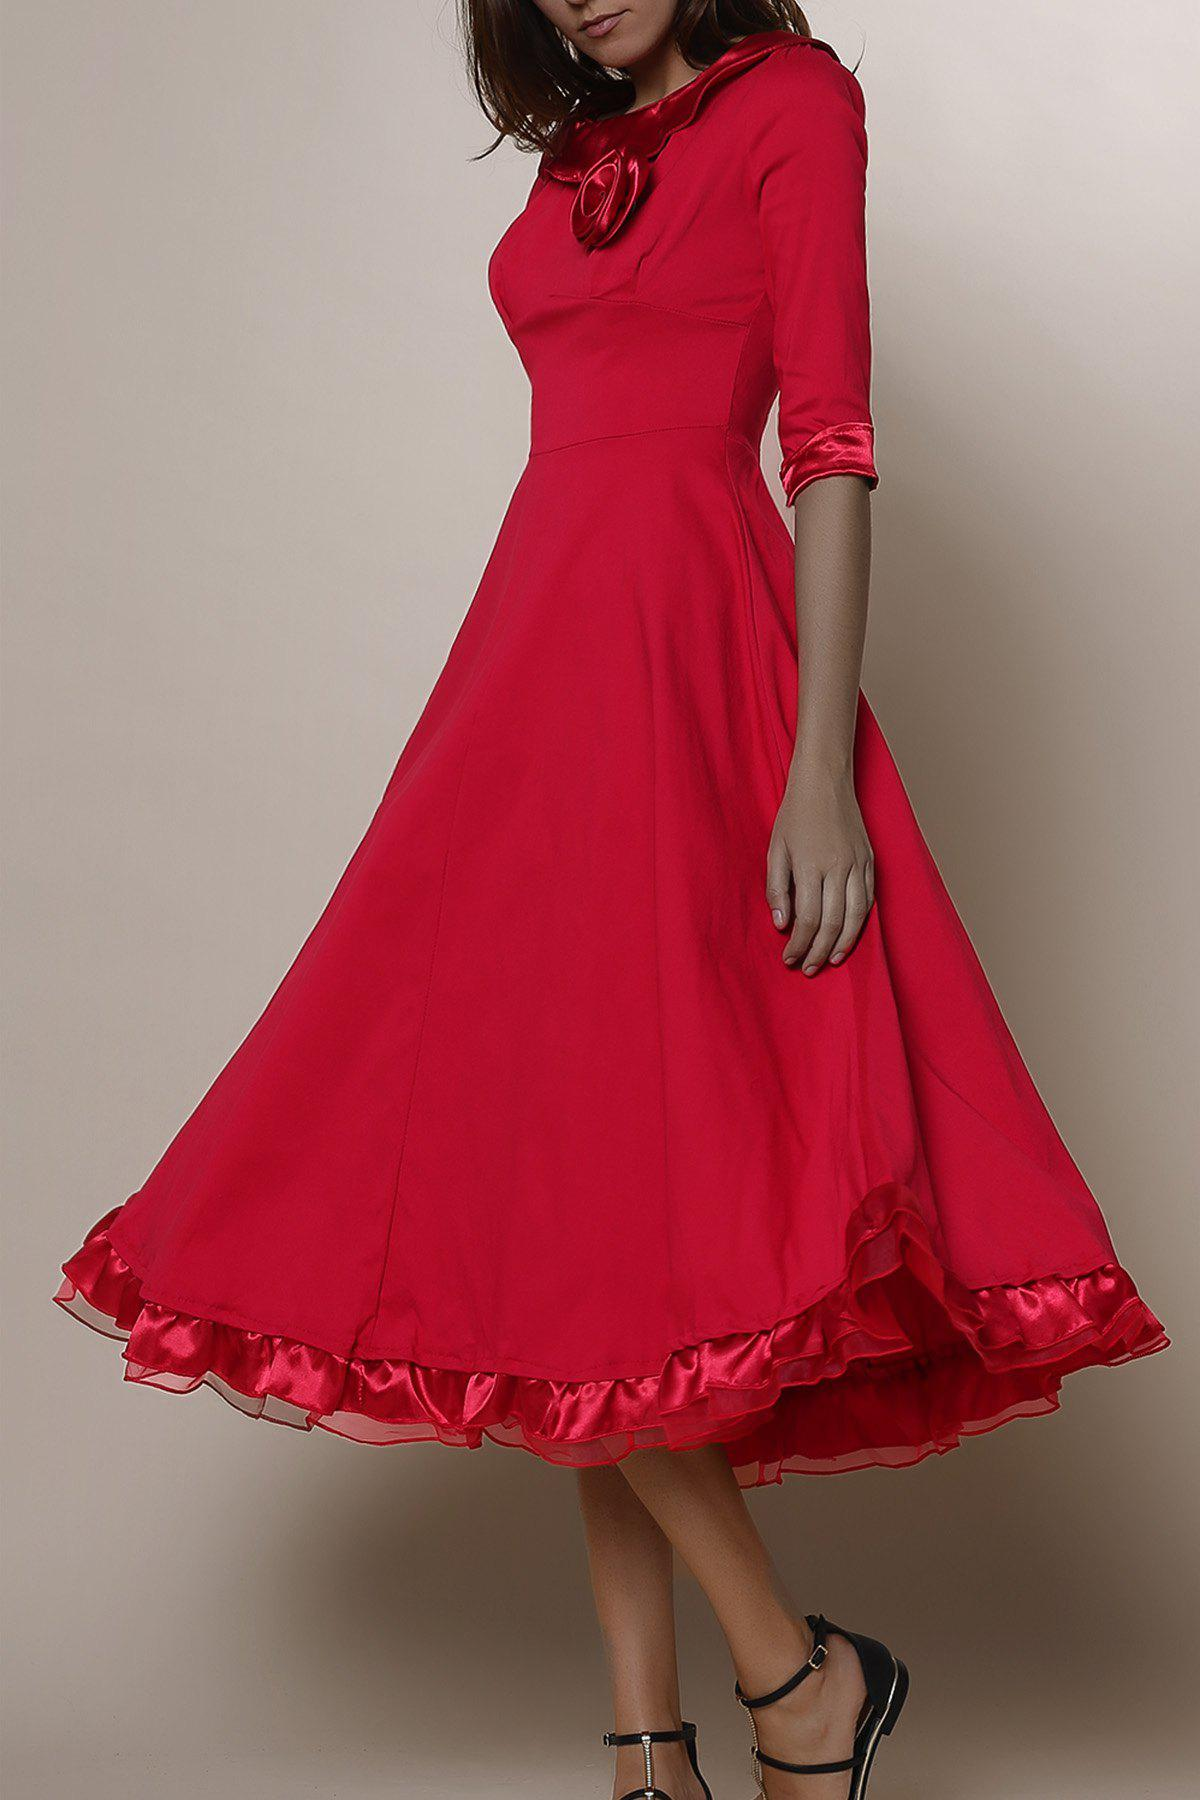 Midi A Line Flounce Swing Evening DressWOMEN<br><br>Size: L; Color: RED; Style: Vintage; Material: Polyester; Silhouette: Ball Gown; Dresses Length: Mid-Calf; Neckline: Round Collar; Sleeve Length: 3/4 Length Sleeves; Pattern Type: Solid; With Belt: No; Season: Summer; Weight: 0.550kg; Package Contents: 1 x Dress;